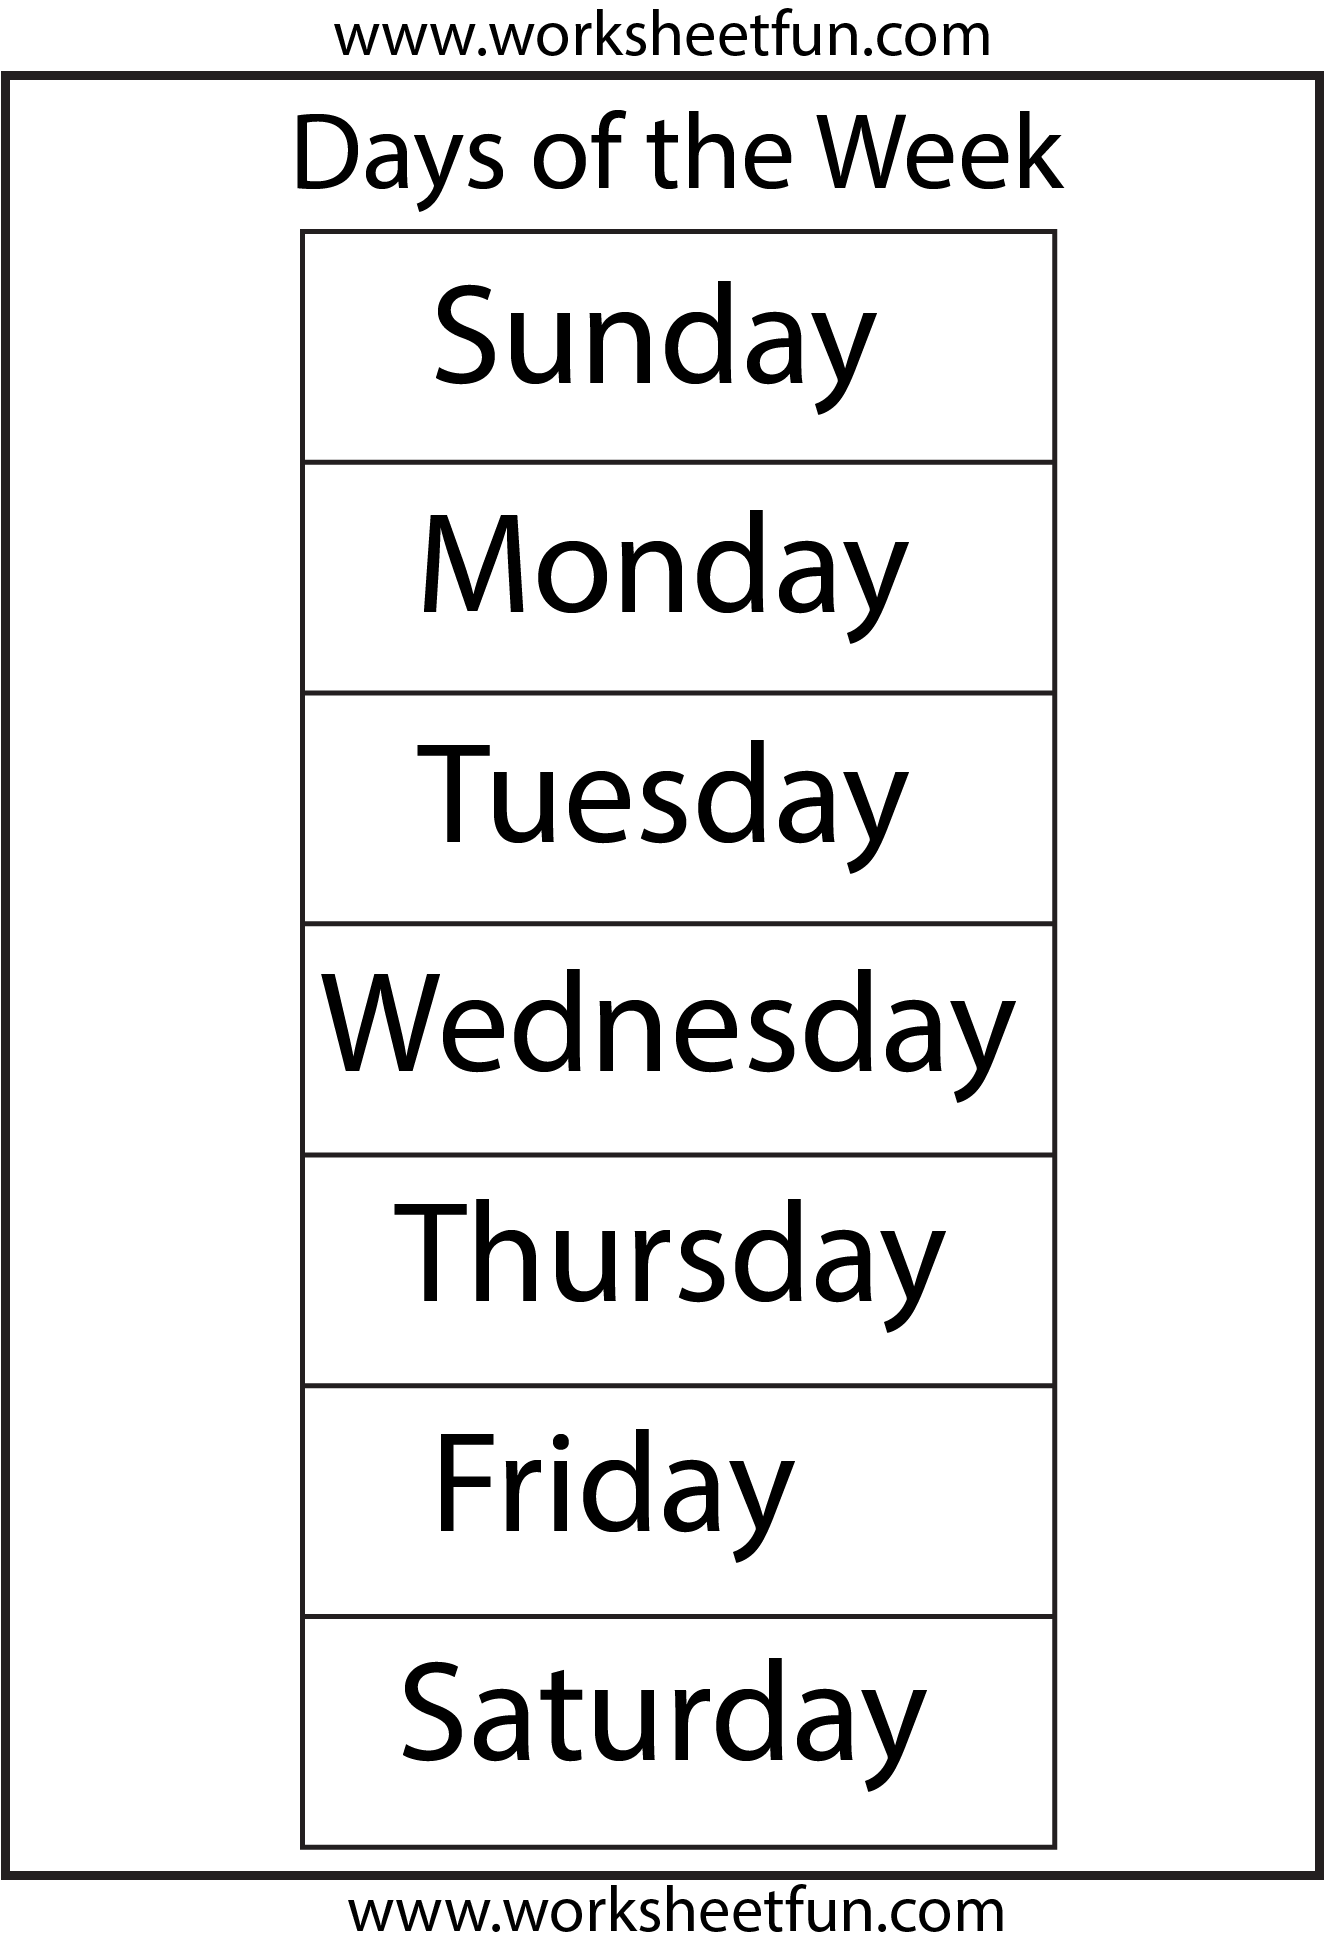 7 Best Images Of Days Of The Week Free Printable